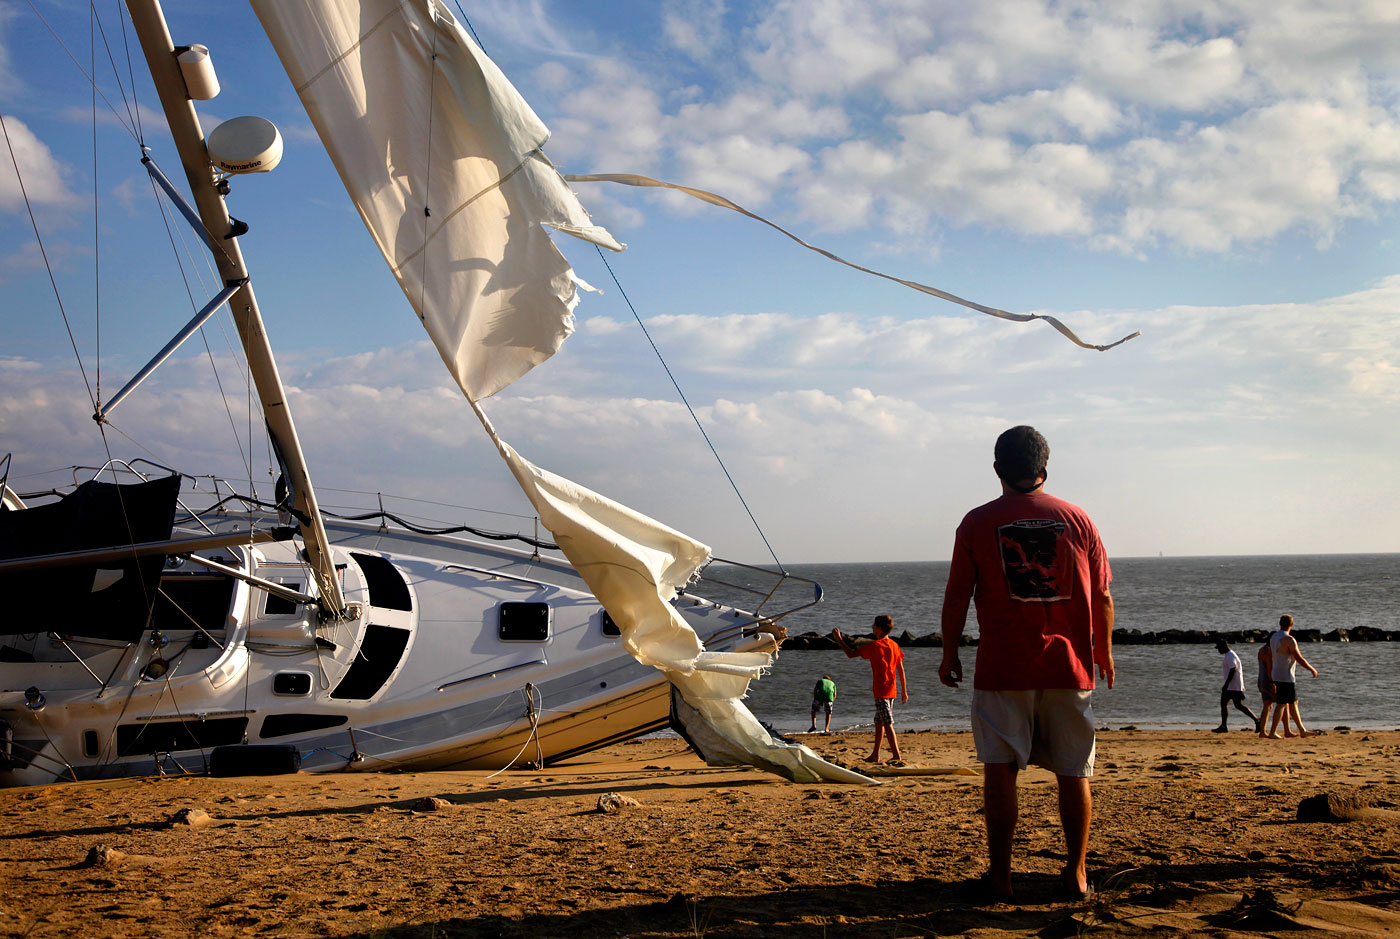 The shipwreck of Maybe Tomorrow, 2011Residents stand on the beach checking out {quote}Maybe Tomorrow,{quote} a 40-foot stranded sailboat. The boat's owners had to be rescued the day before while trying to out run Hurricane Irene's path. The sailboat became a local attraction in the days after the storm and was later destroyed by a fire before it was eventually hauled away.